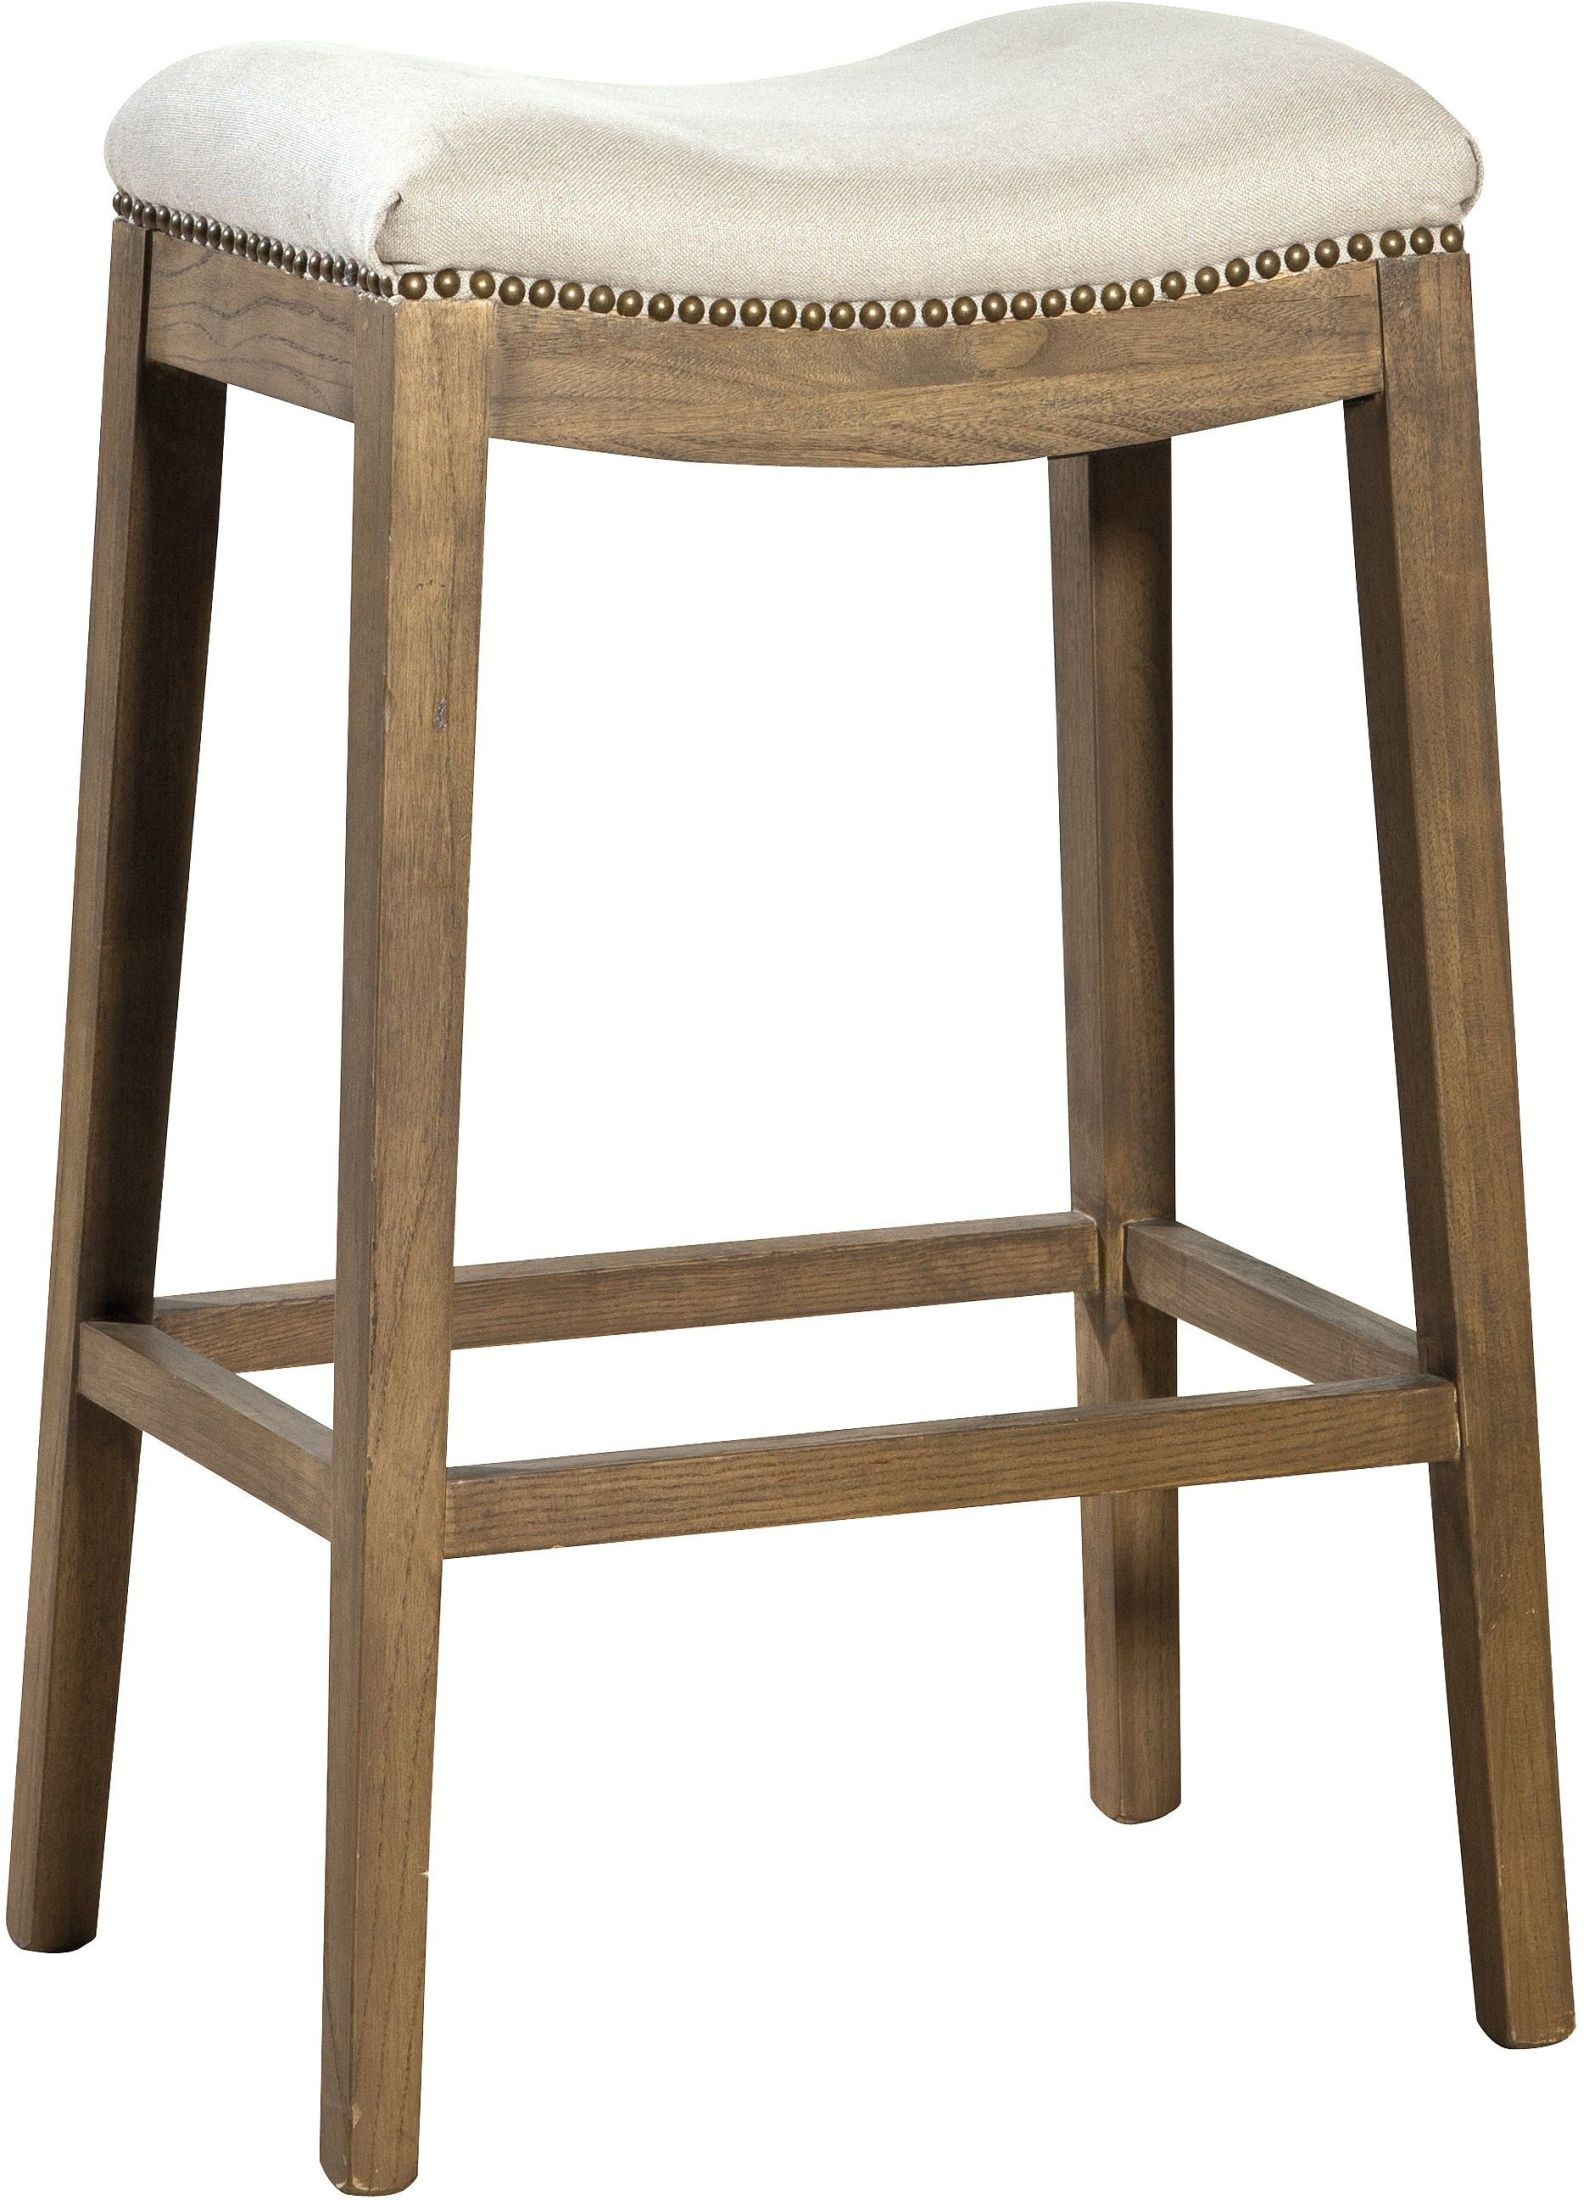 Beige Linen Backless Bar Stool Set Of 2 From Furniture